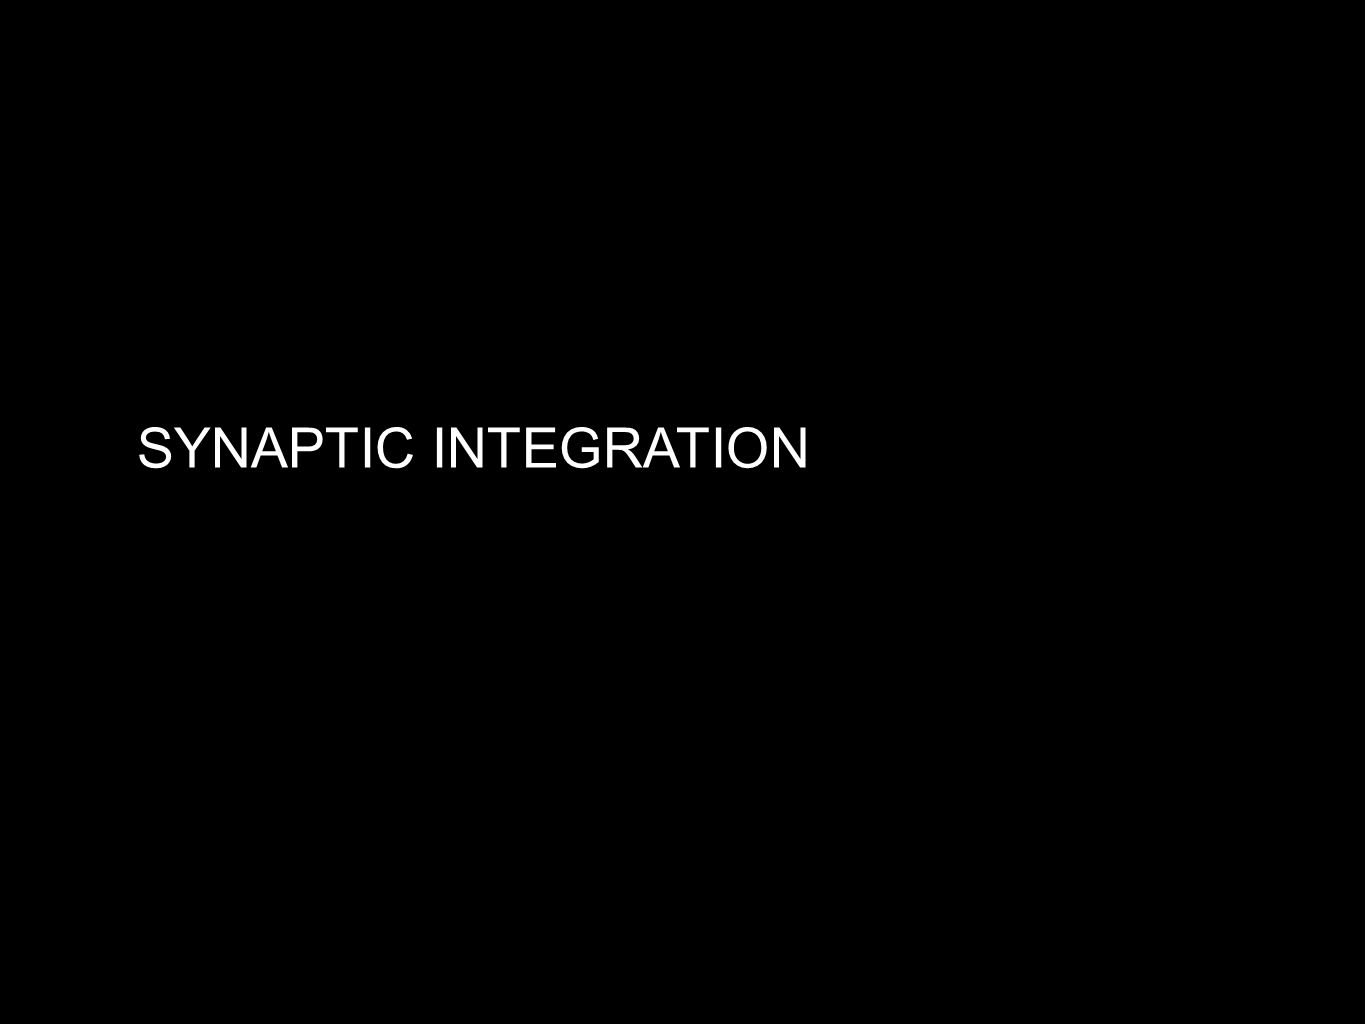 SYNAPTIC INTEGRATION